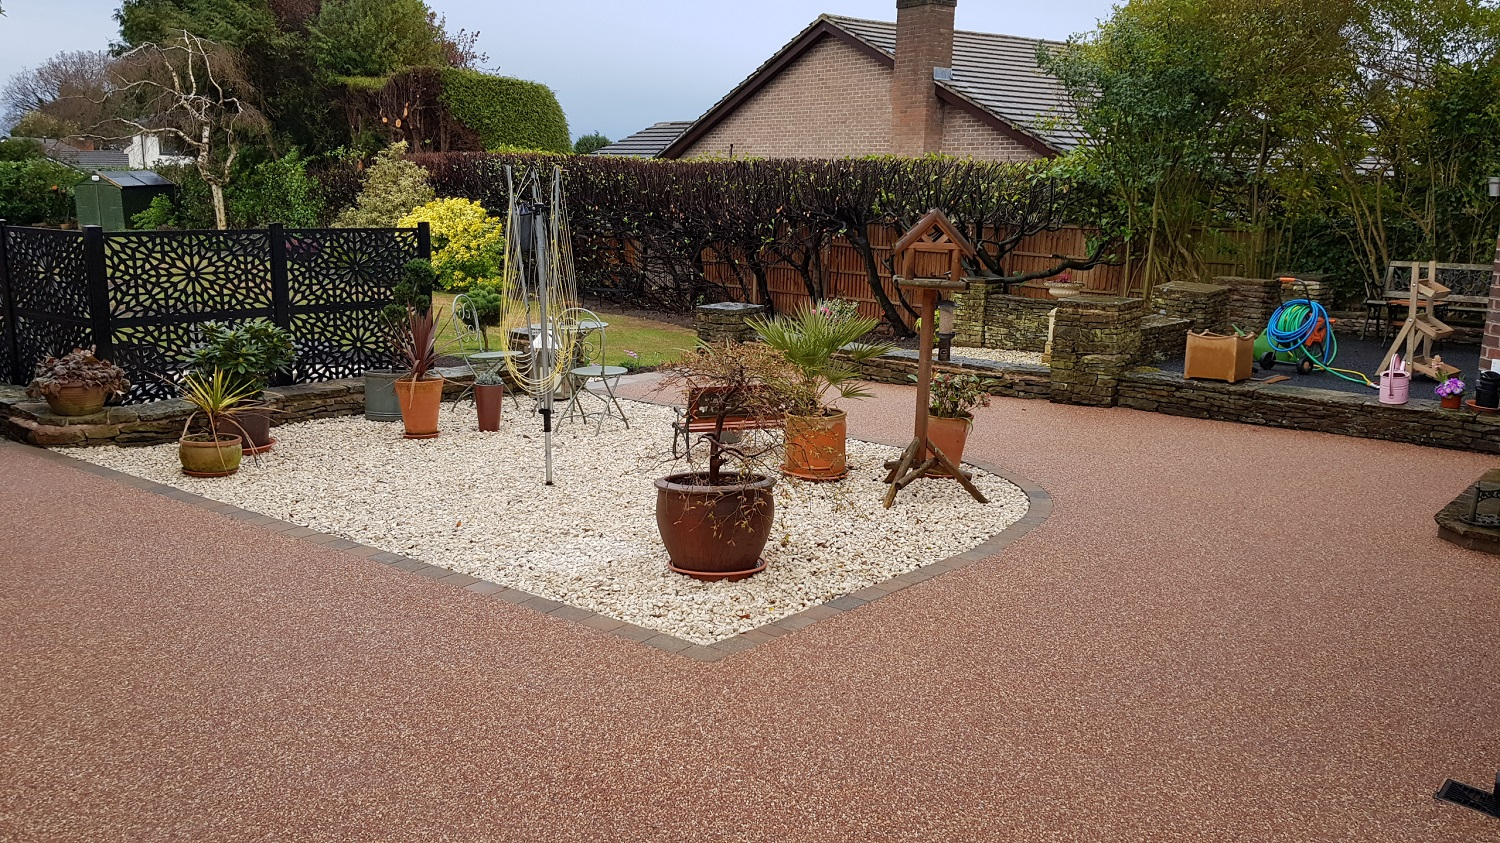 R12 - Chilli Chocolate Mix (2)  Resin Bound Driveway Surfacing at Brookside  in Chesterfield with Bl